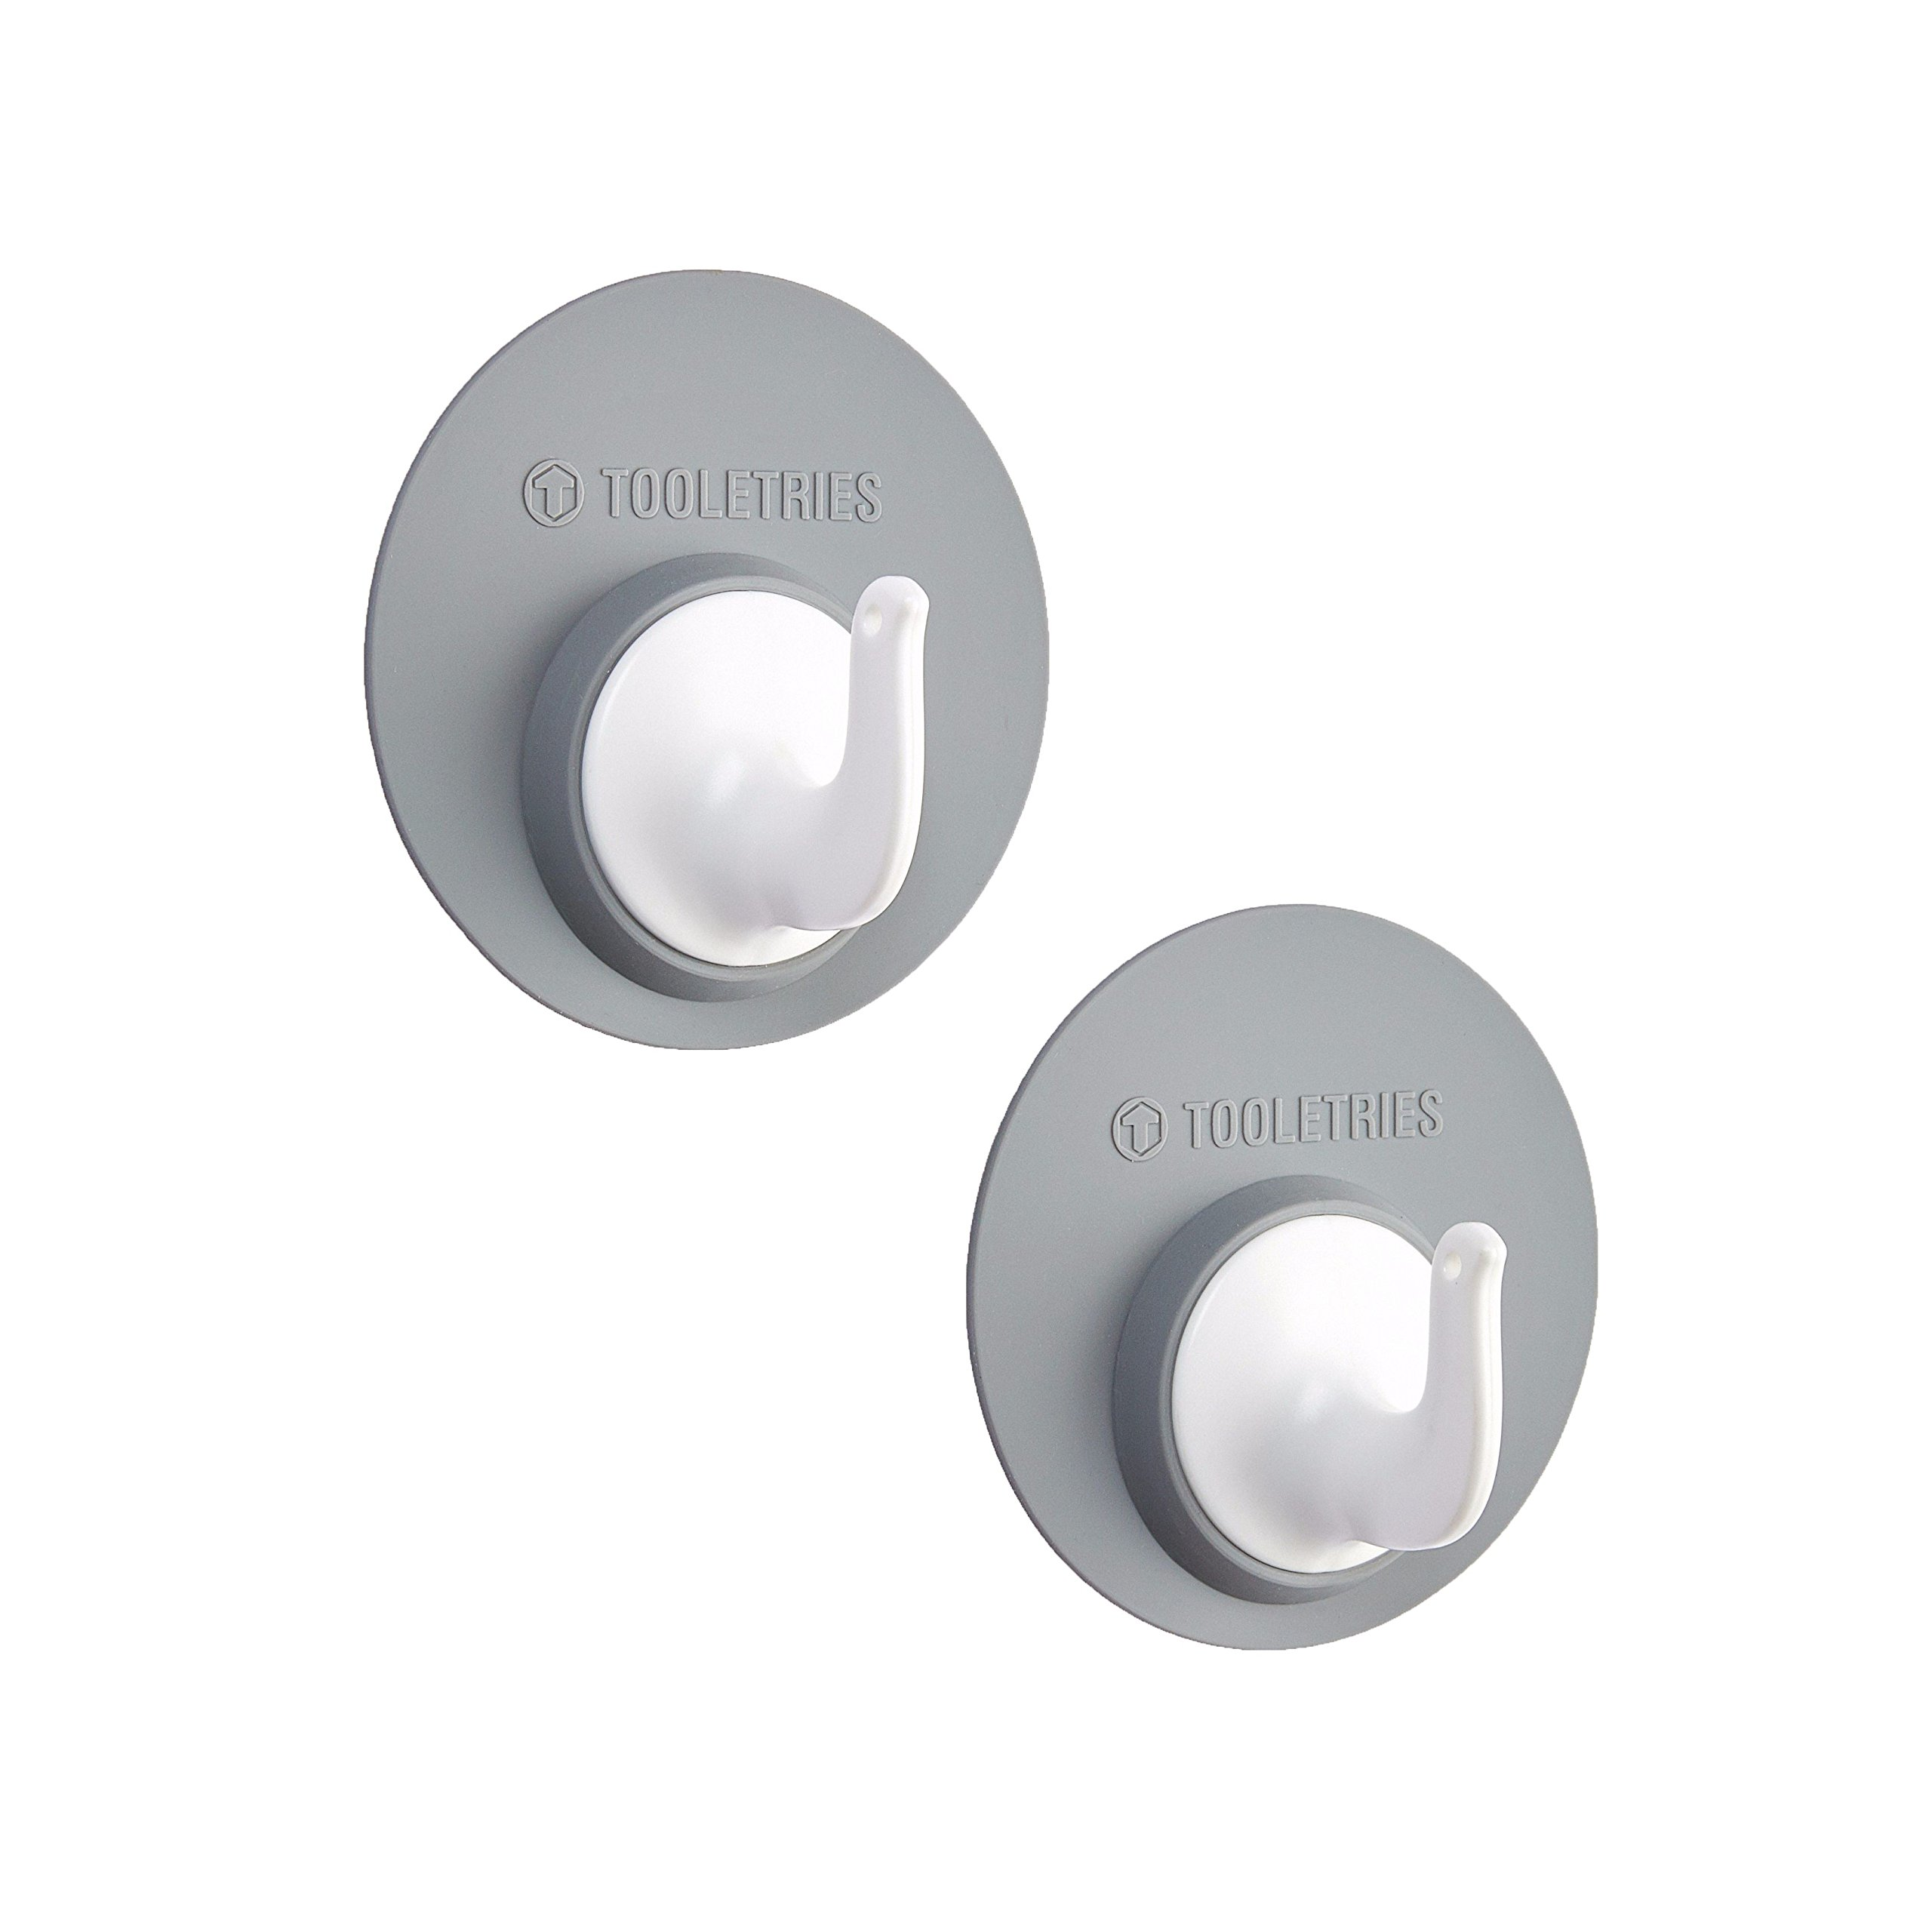 Tooletries Reusable Bathroom Hooks - Holds up to 10lbs! No suction cups. No Adhesives. Leaves no Residue - REUSABLE (Grey)